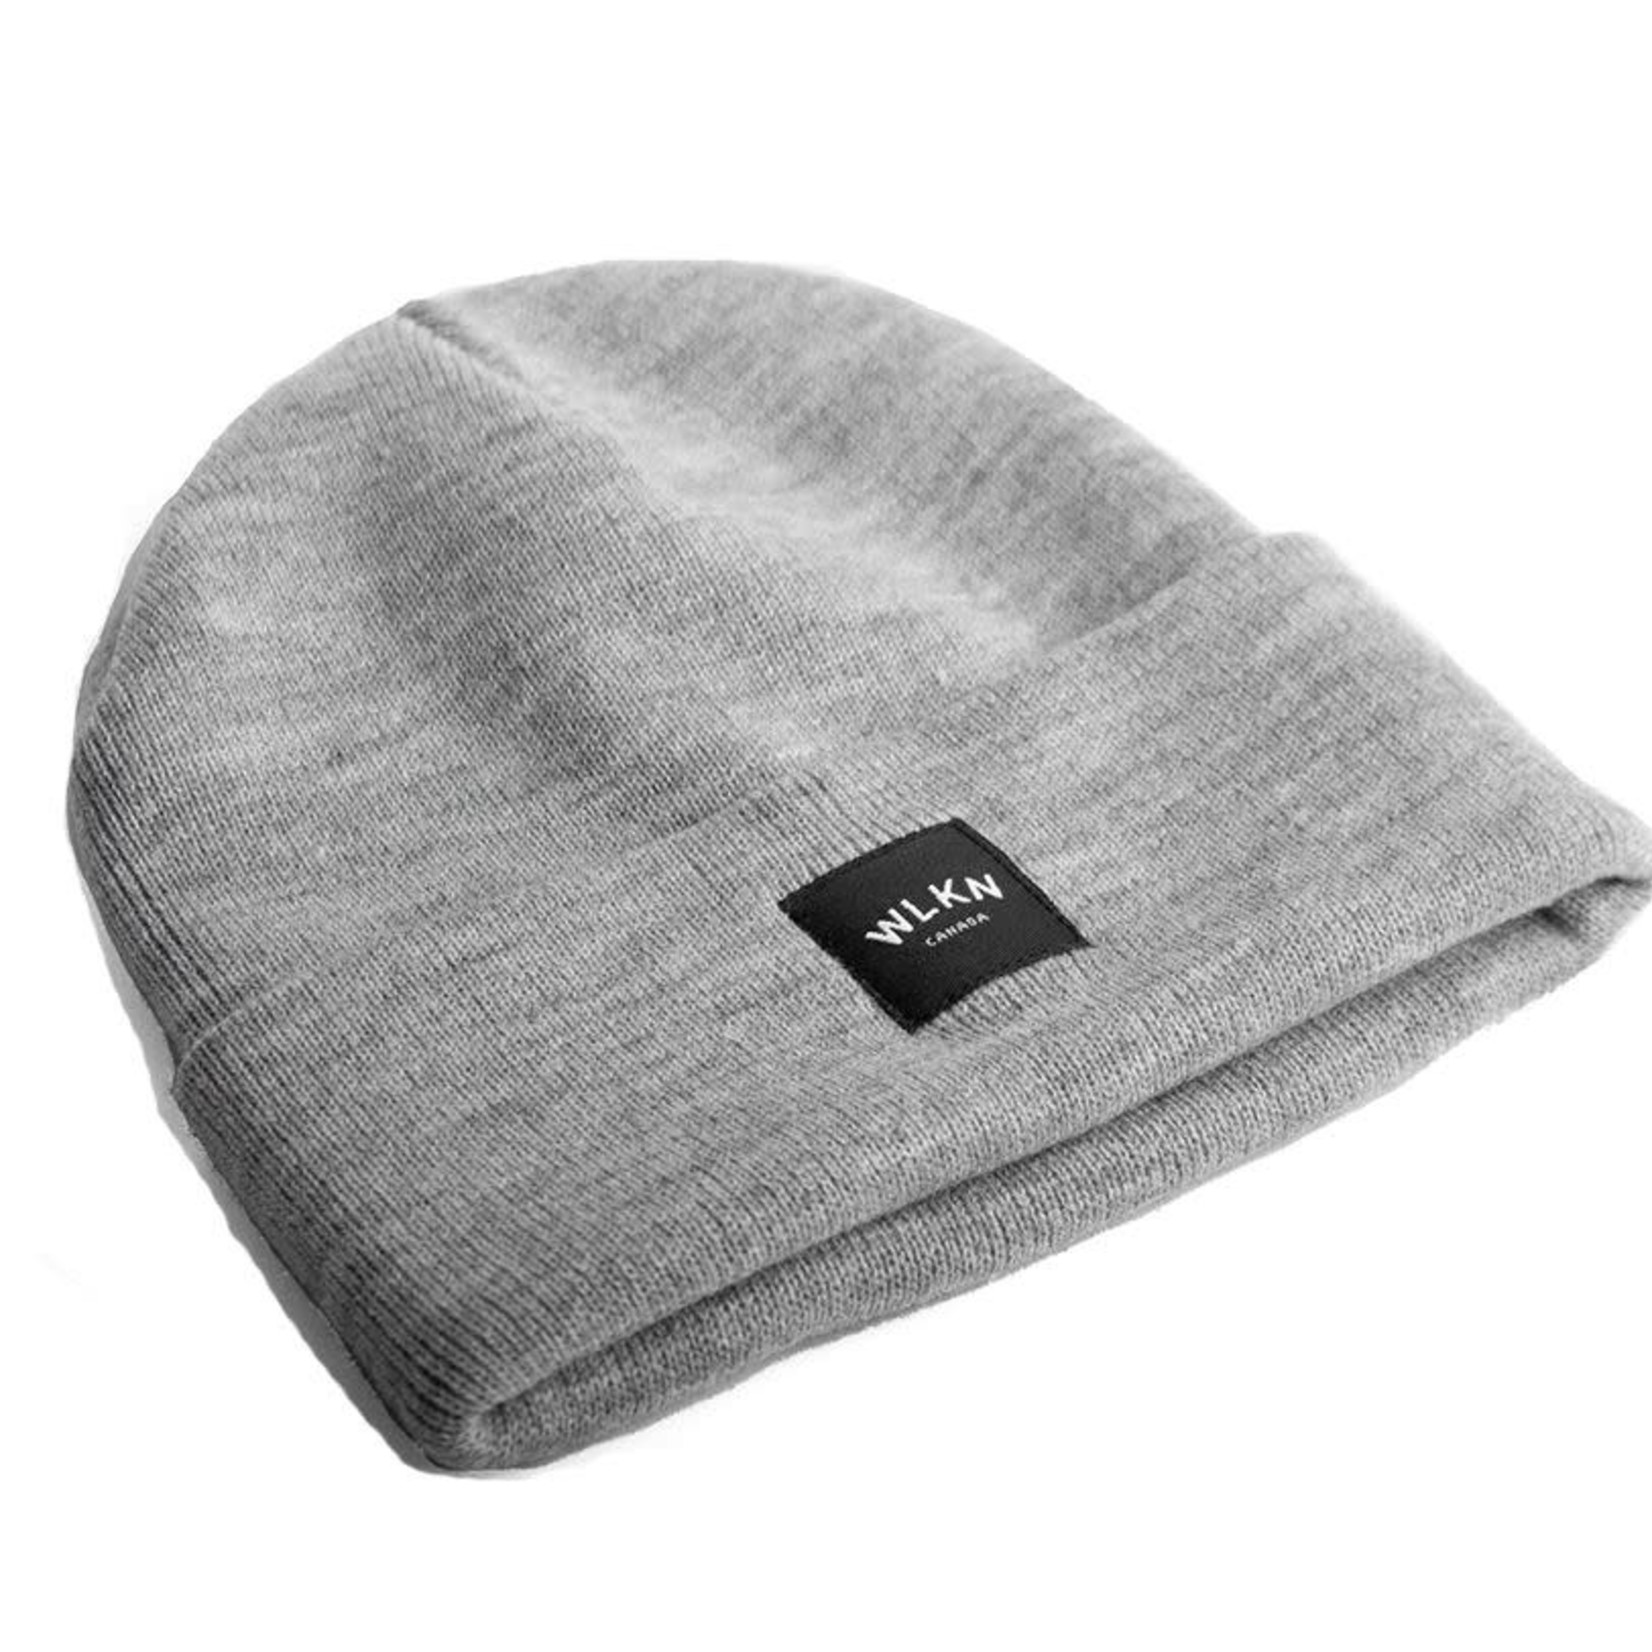 WLKN WLKN : Rounded Country Label Beanie Heather Grey O/S